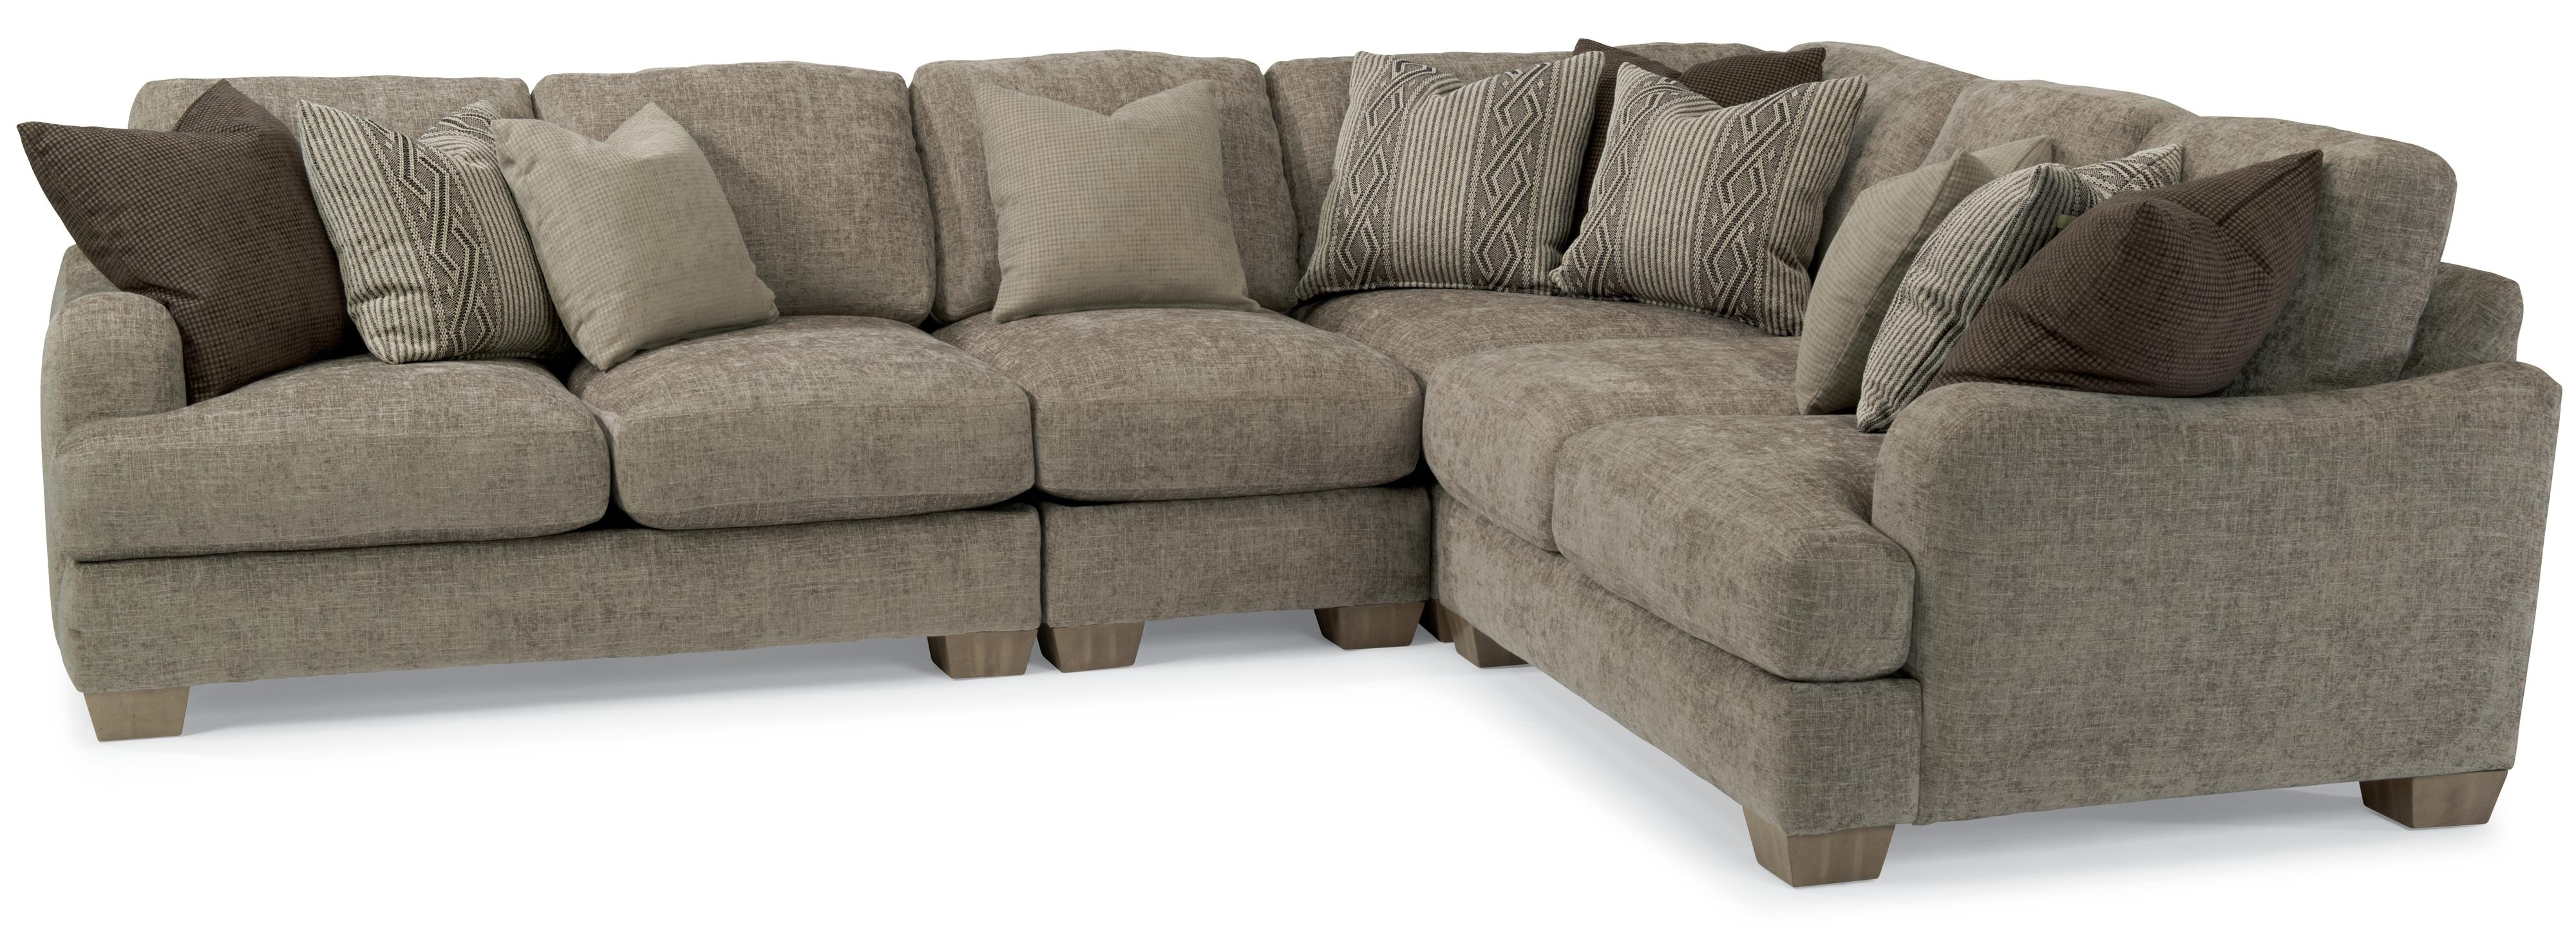 Vanessa Sectional Sofa With Loose Pillow Backflexsteel With Most Recently Released Johnson City Tn Sectional Sofas (Gallery 4 of 20)